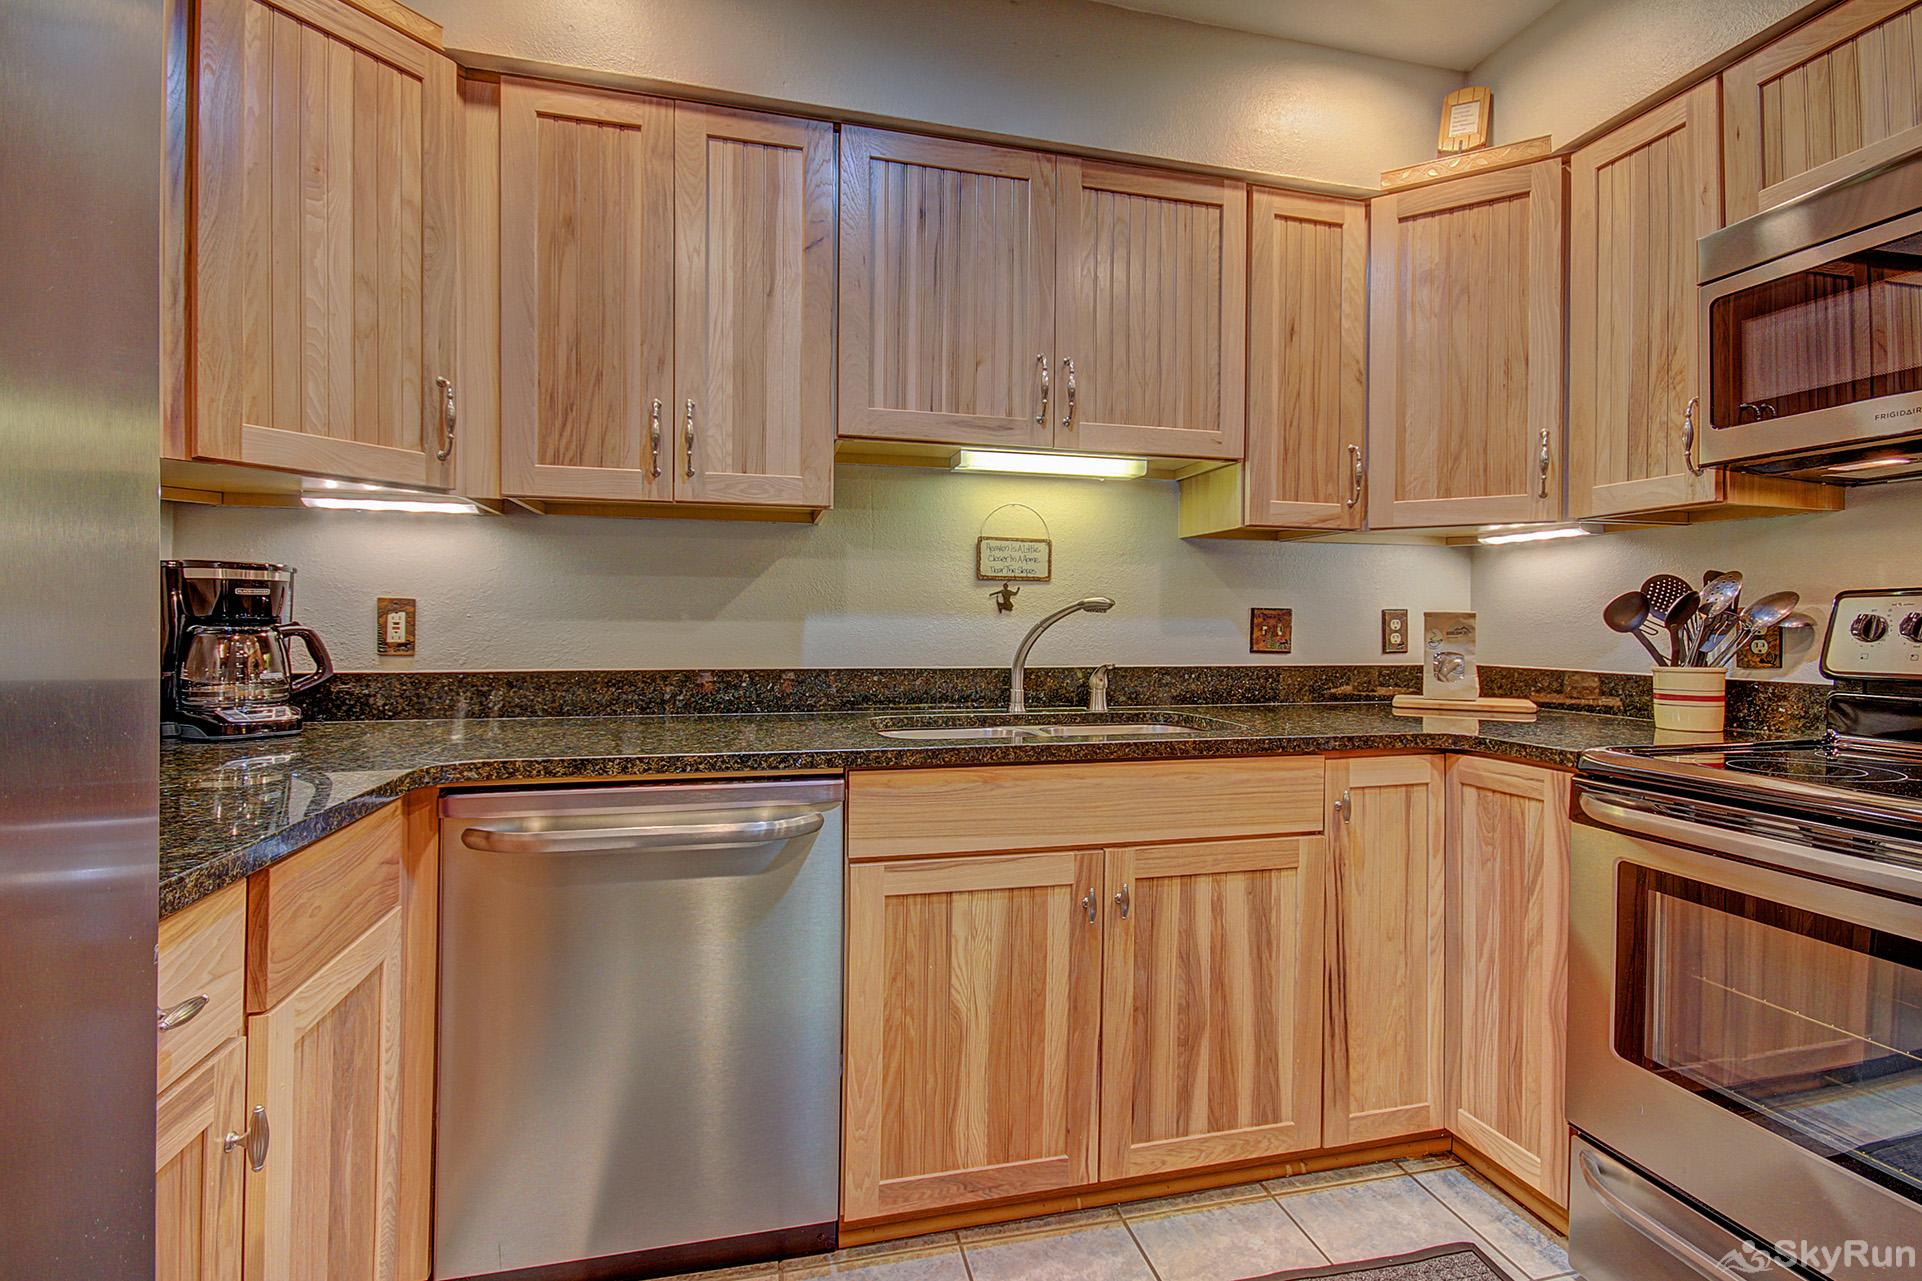 Ski Hill 22 Upgraded kitchen with stainless steel appliances